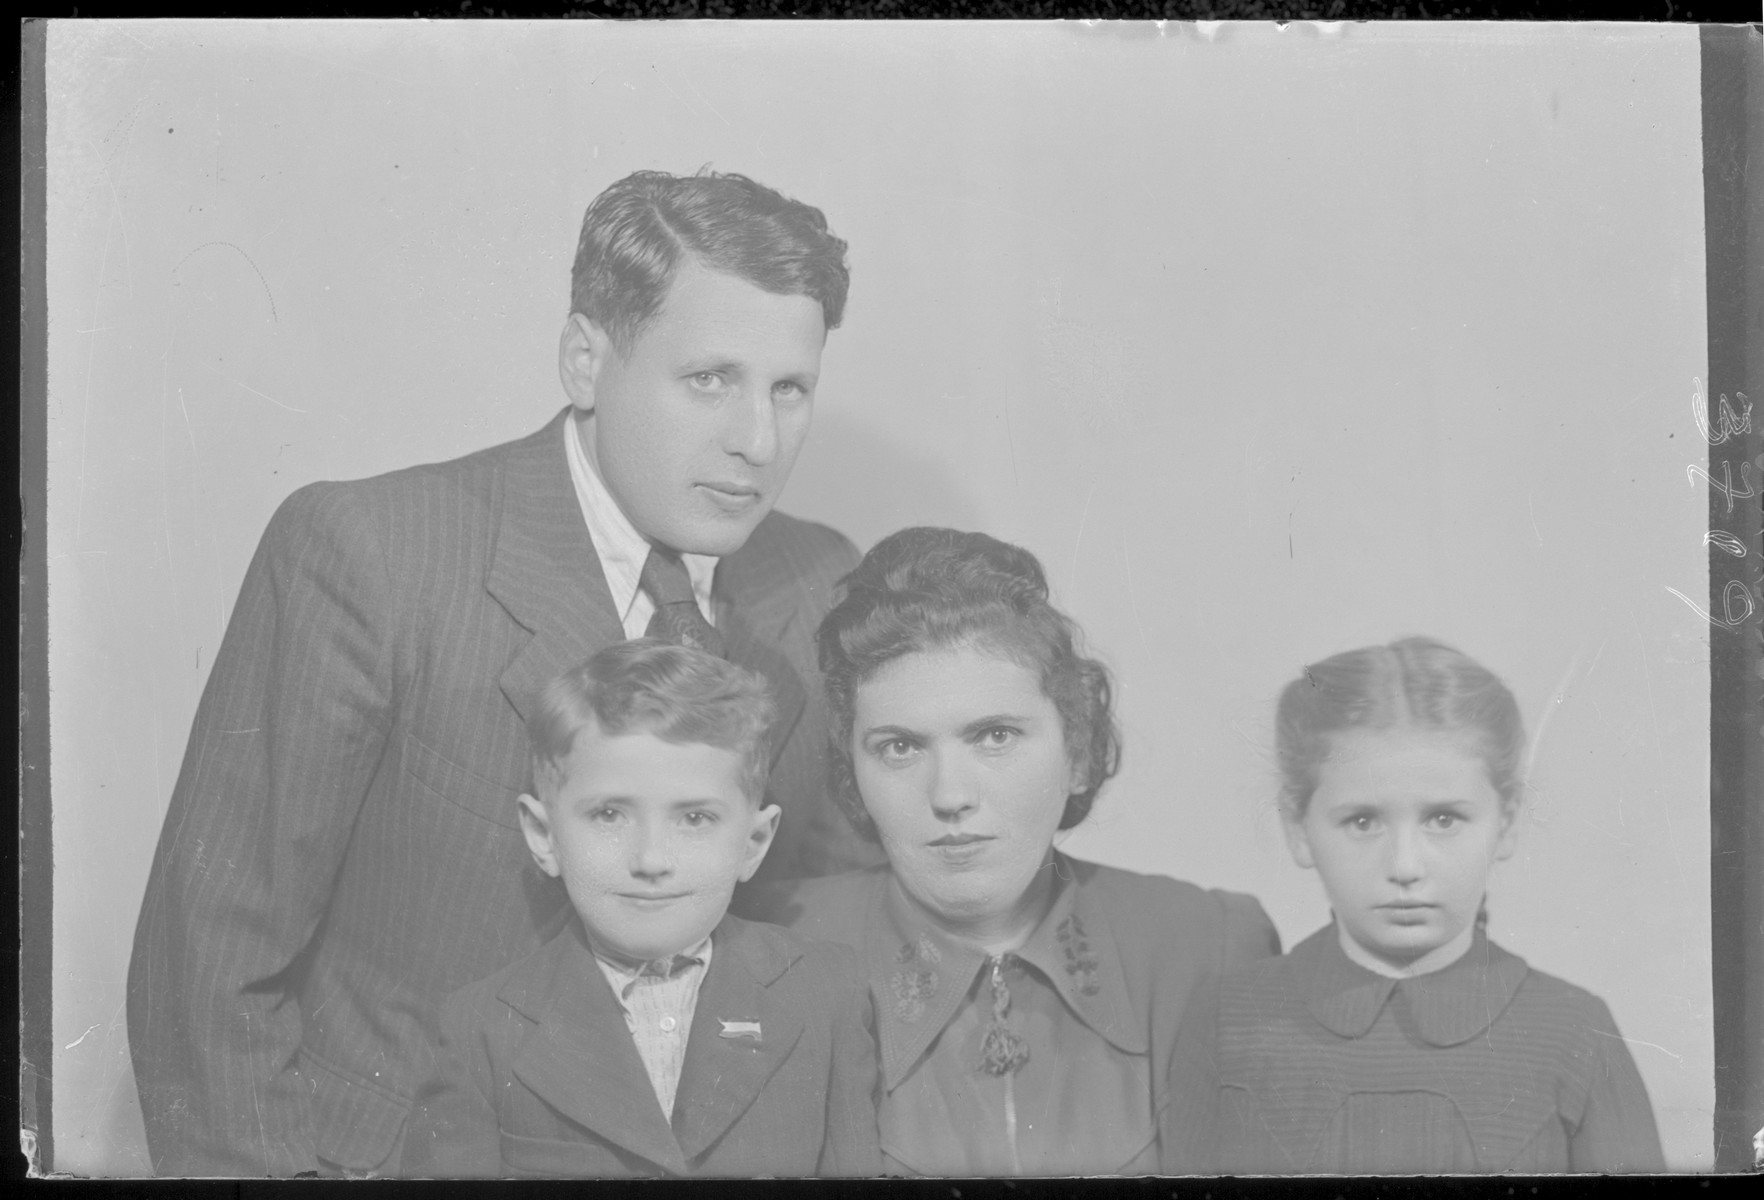 Studio portrait of the family of Gyorko Schvartz.